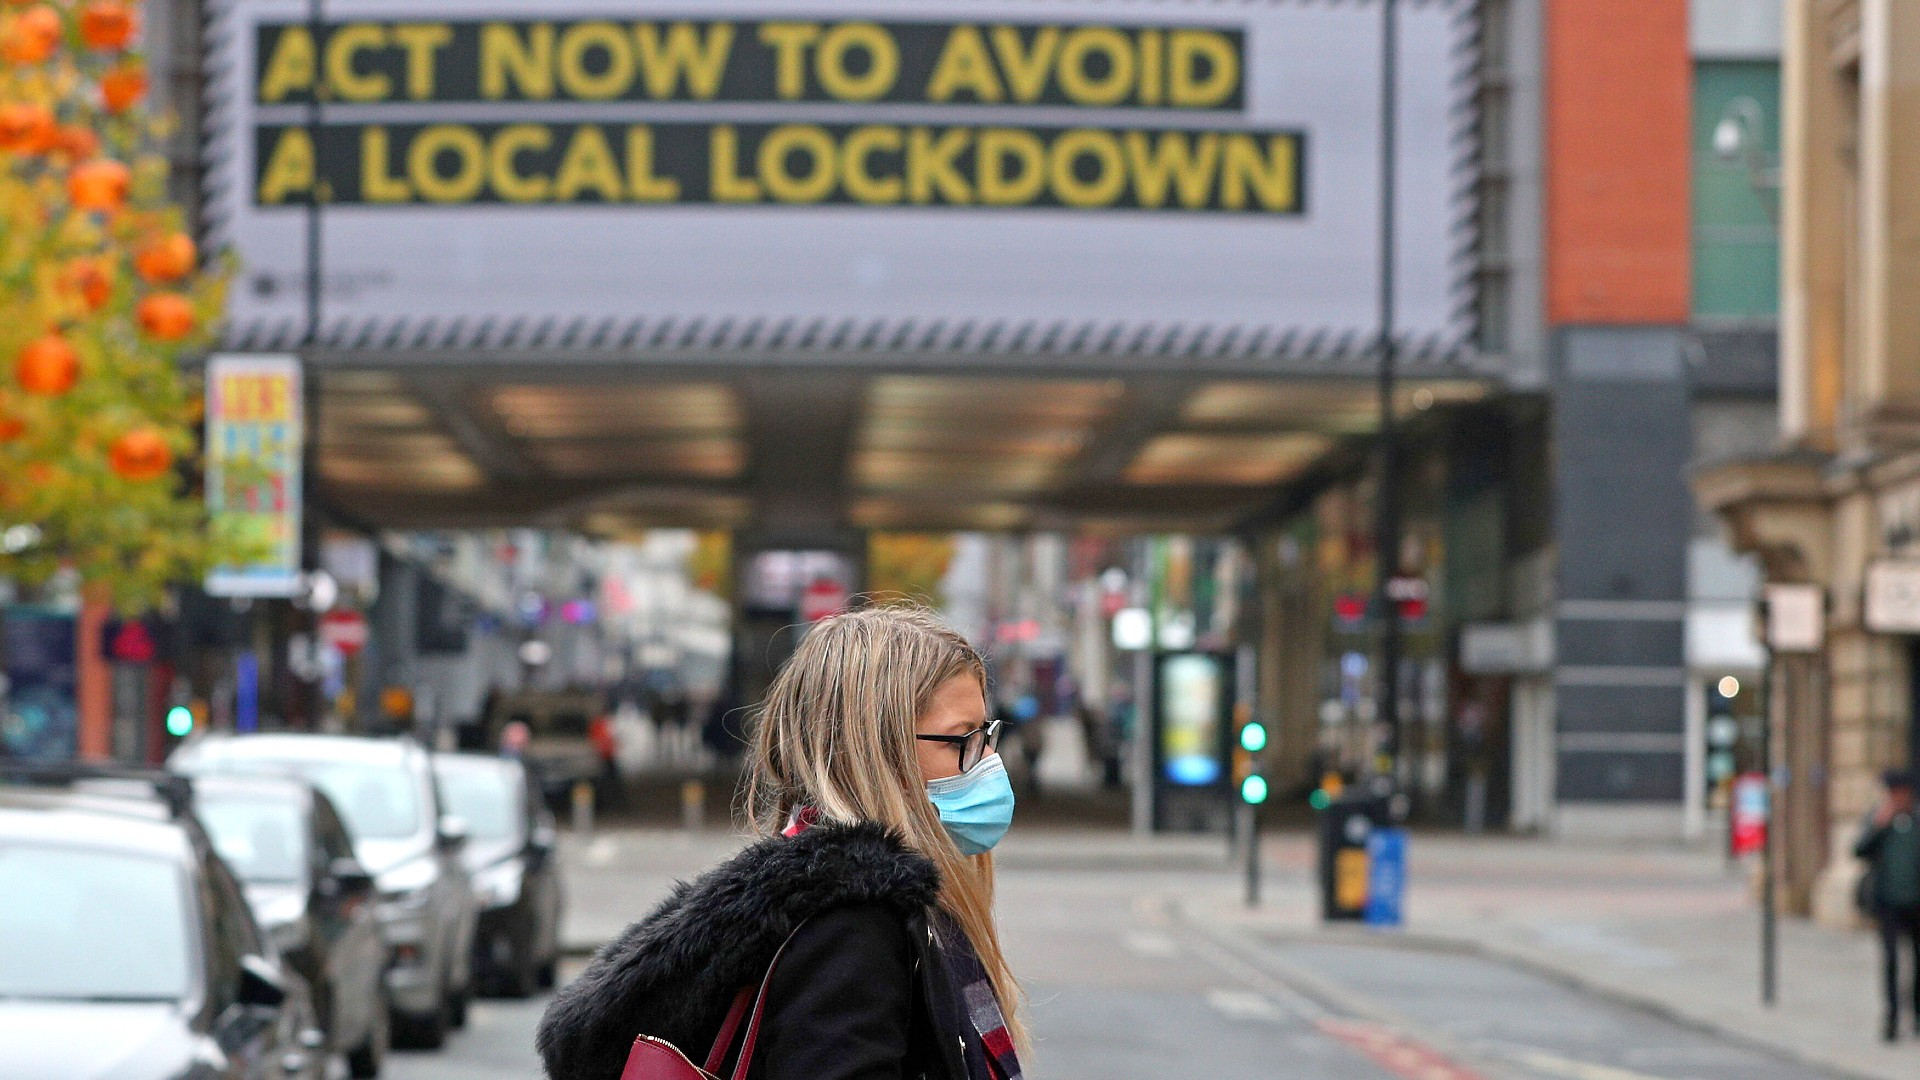 A woman wearing a face mask walks in Manchester, England, Monday, Oct. 19, 2020. (Peter Byrne/PA via AP)